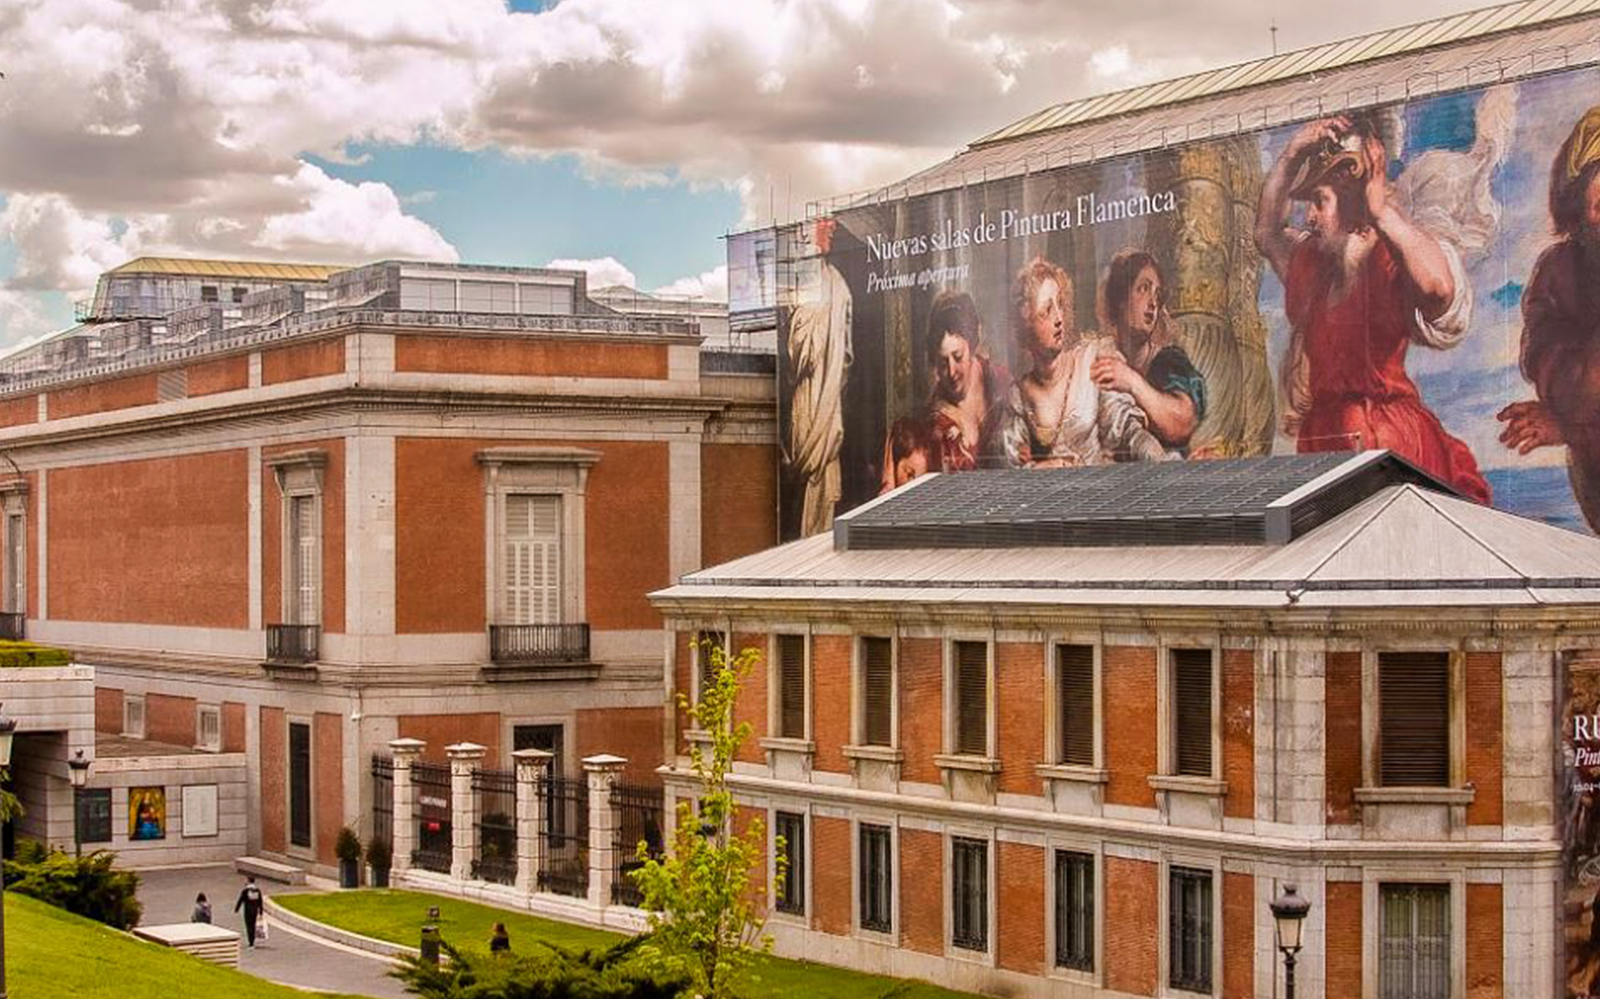 12625827 5e5b 4562 abcf ae3637530962 10409 madrid prado museum guided tour 04